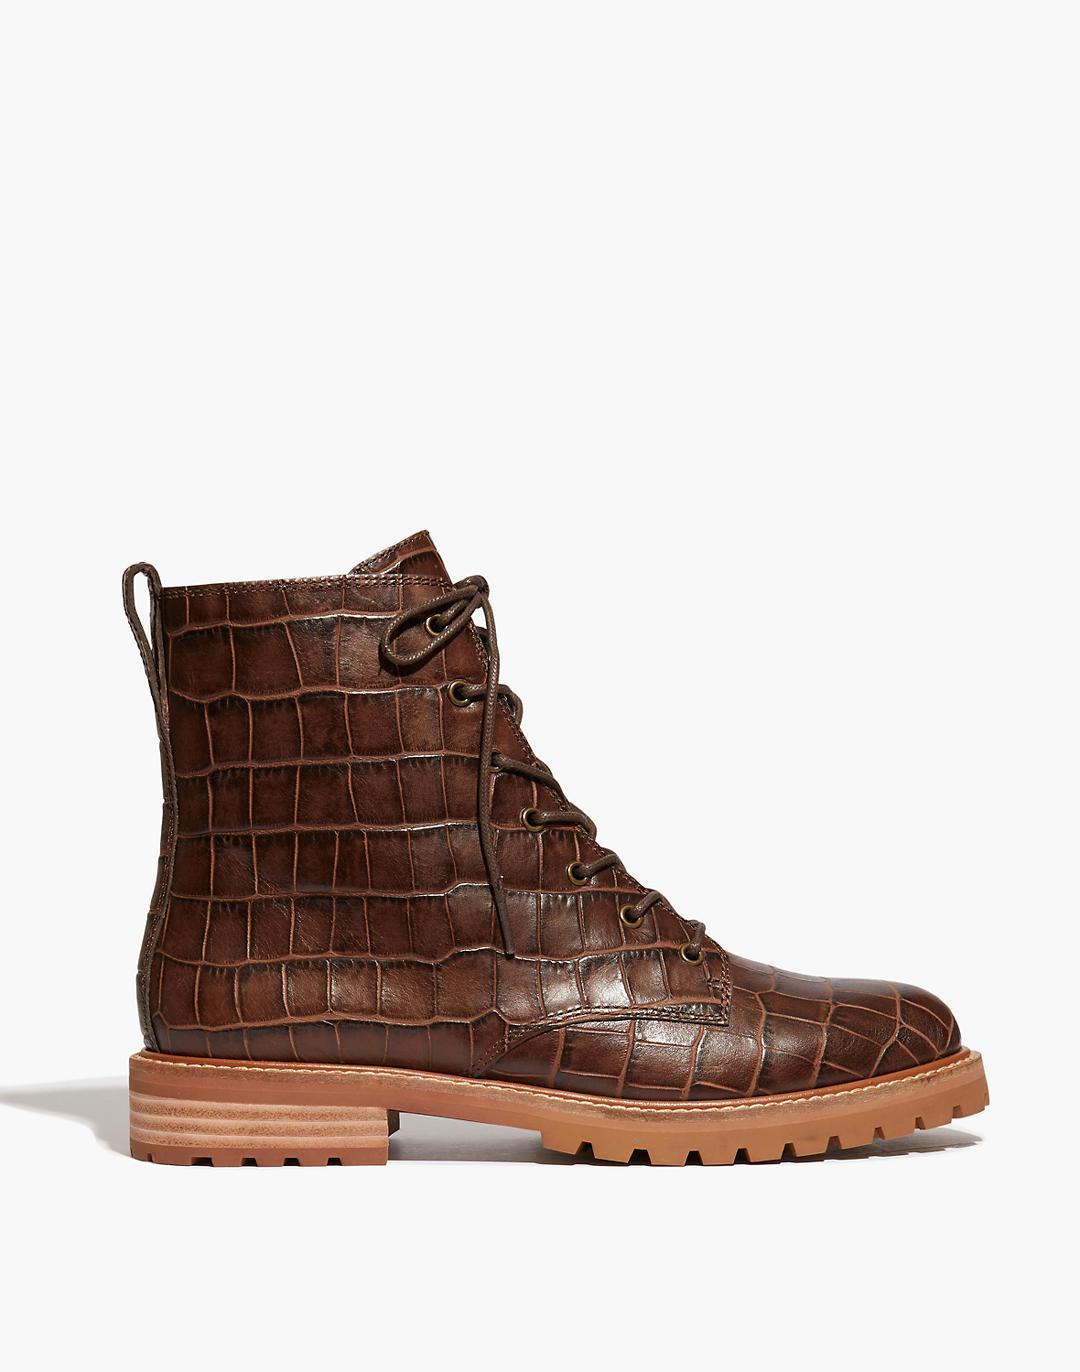 The Clair Lace-Up Boot in Croc Embossed Leather 1